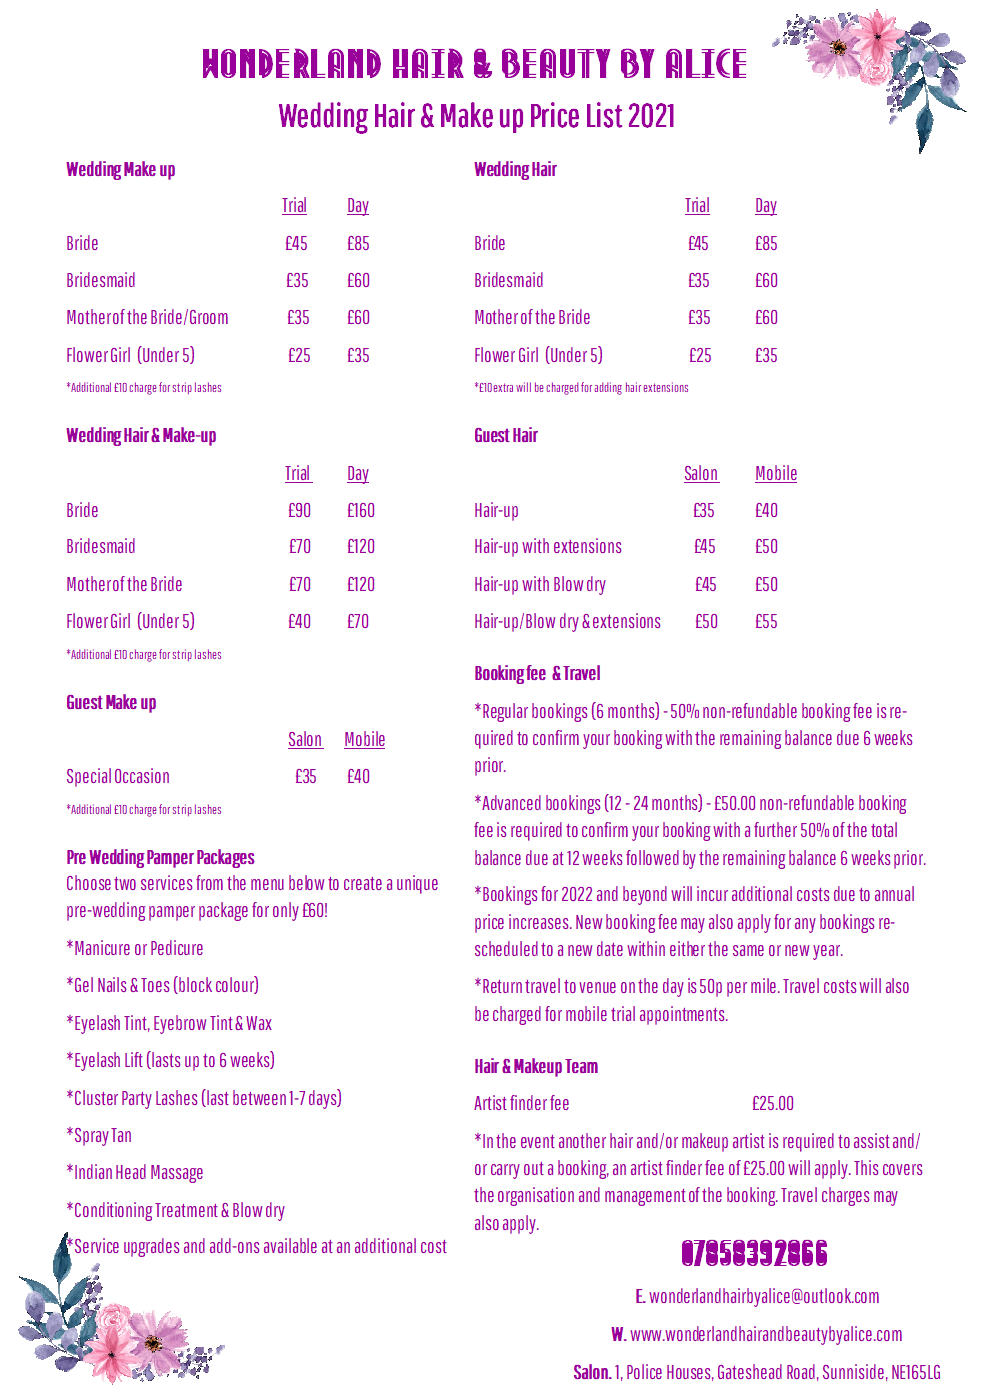 WEDDING HAIR & MAKEUP PRICELIST 2021 (IM